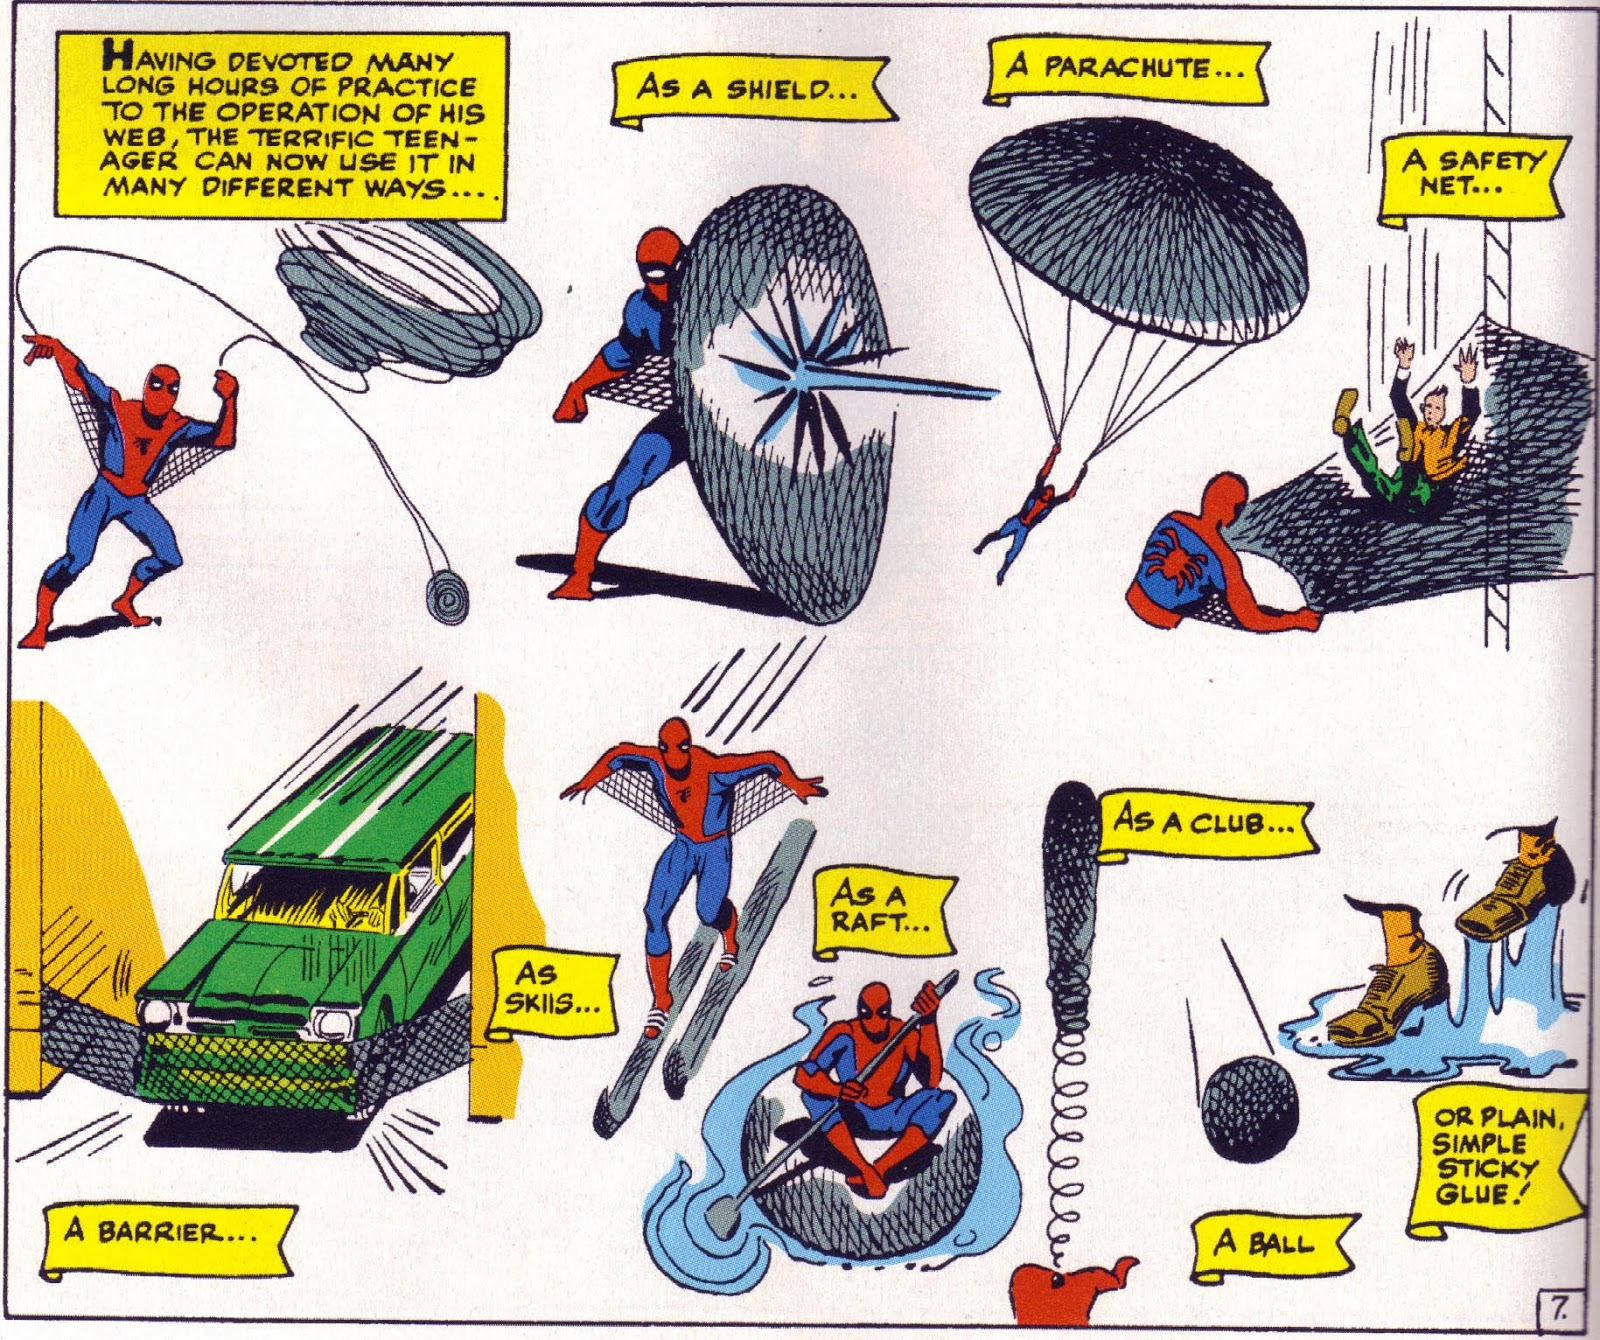 Drawn spider web acid Weapons: on Shooters  Crisis